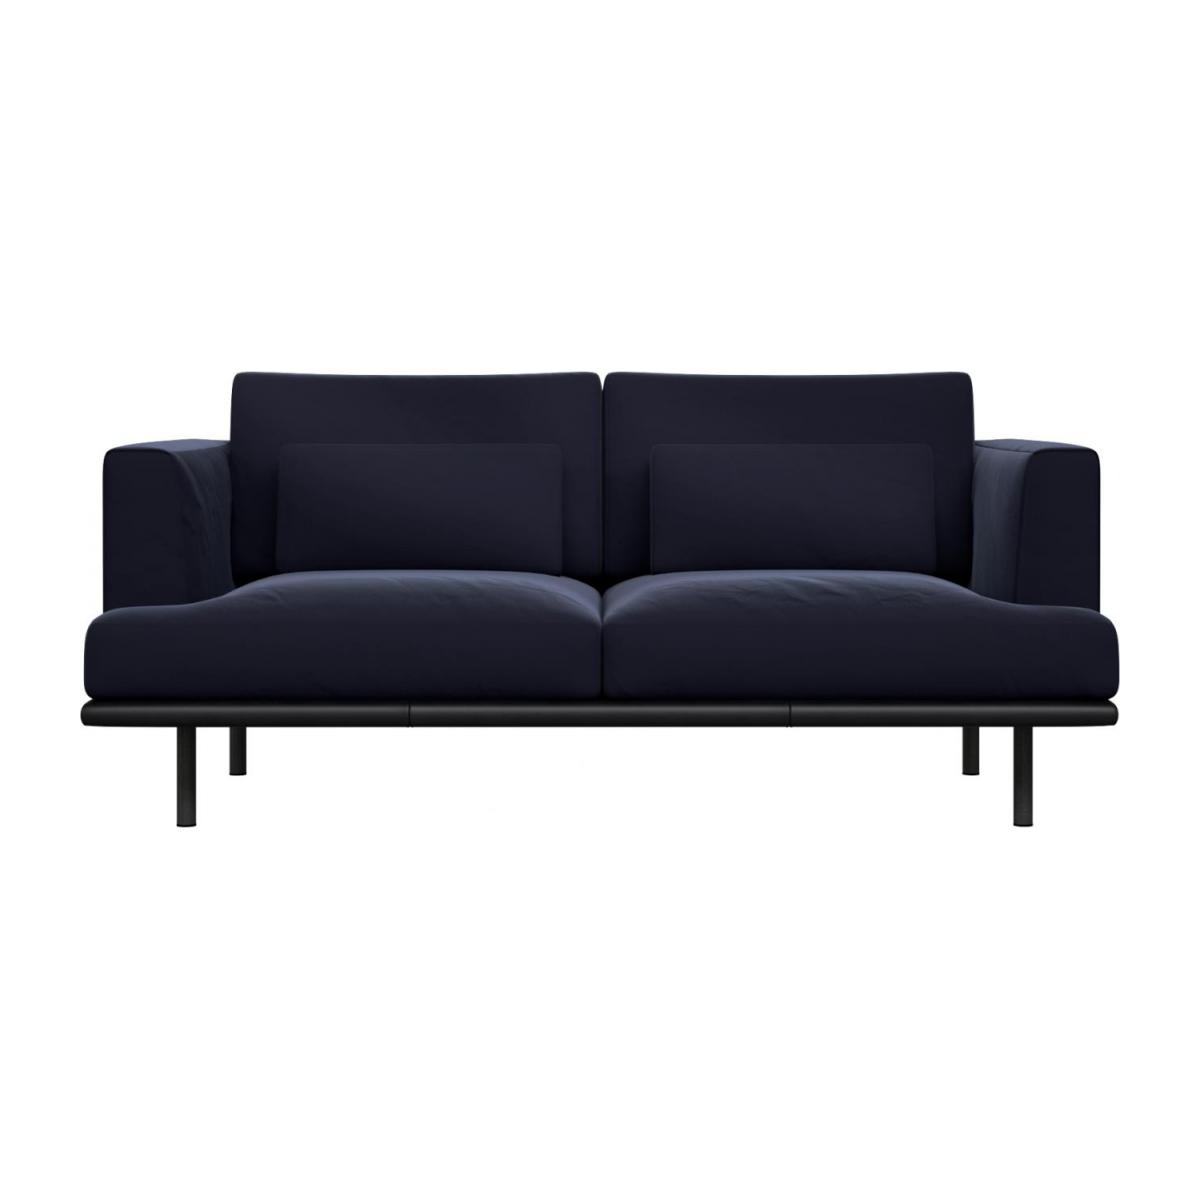 2 seater sofa in Super Velvet fabric, dark blue with base in black leather n°2